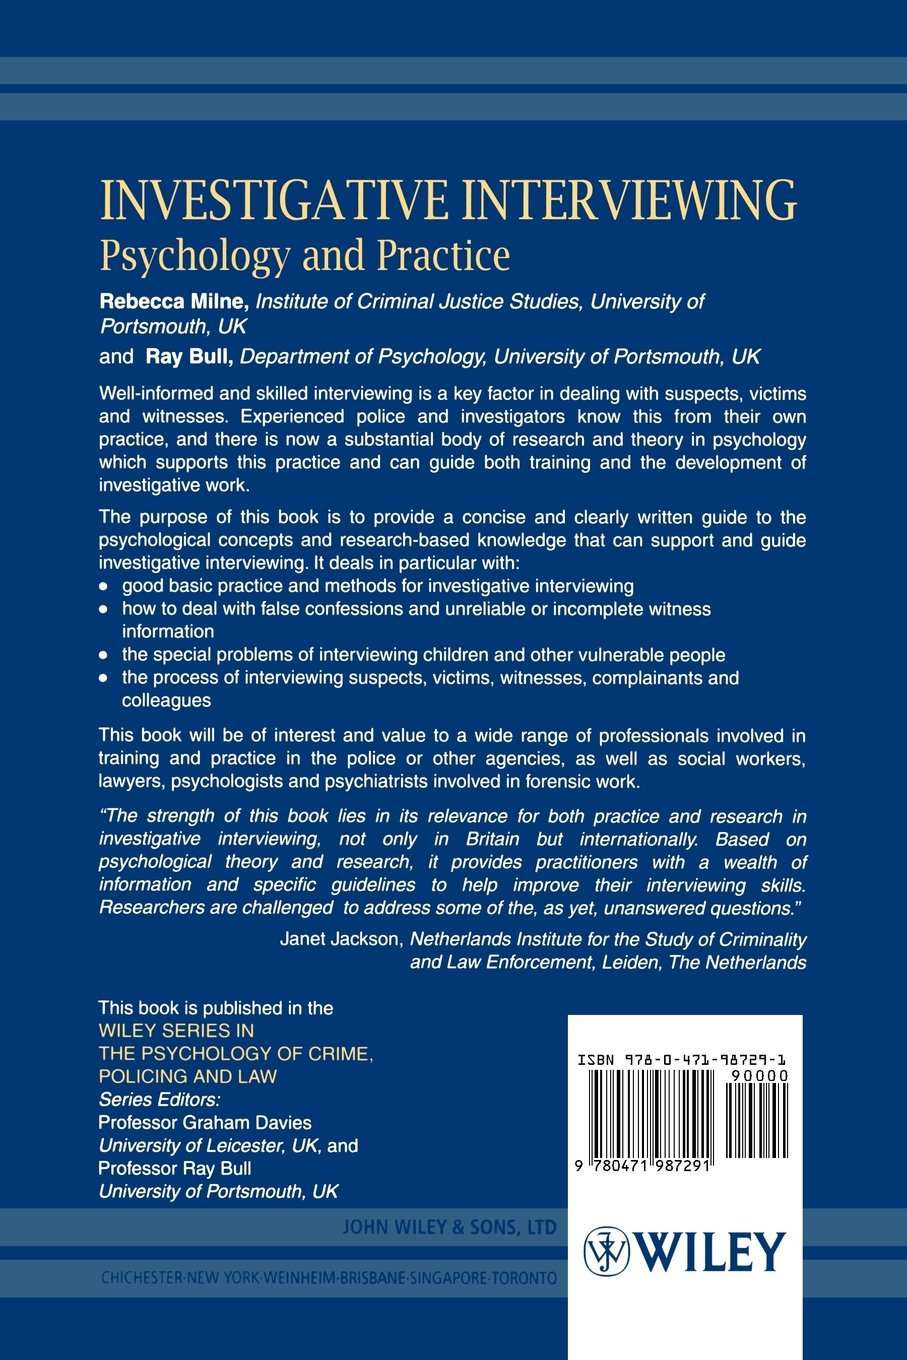 investigative interviewing psychology and practice wiley series investigative interviewing psychology and practice wiley series in psychology of crime policing and law amazon co uk rebecca milne